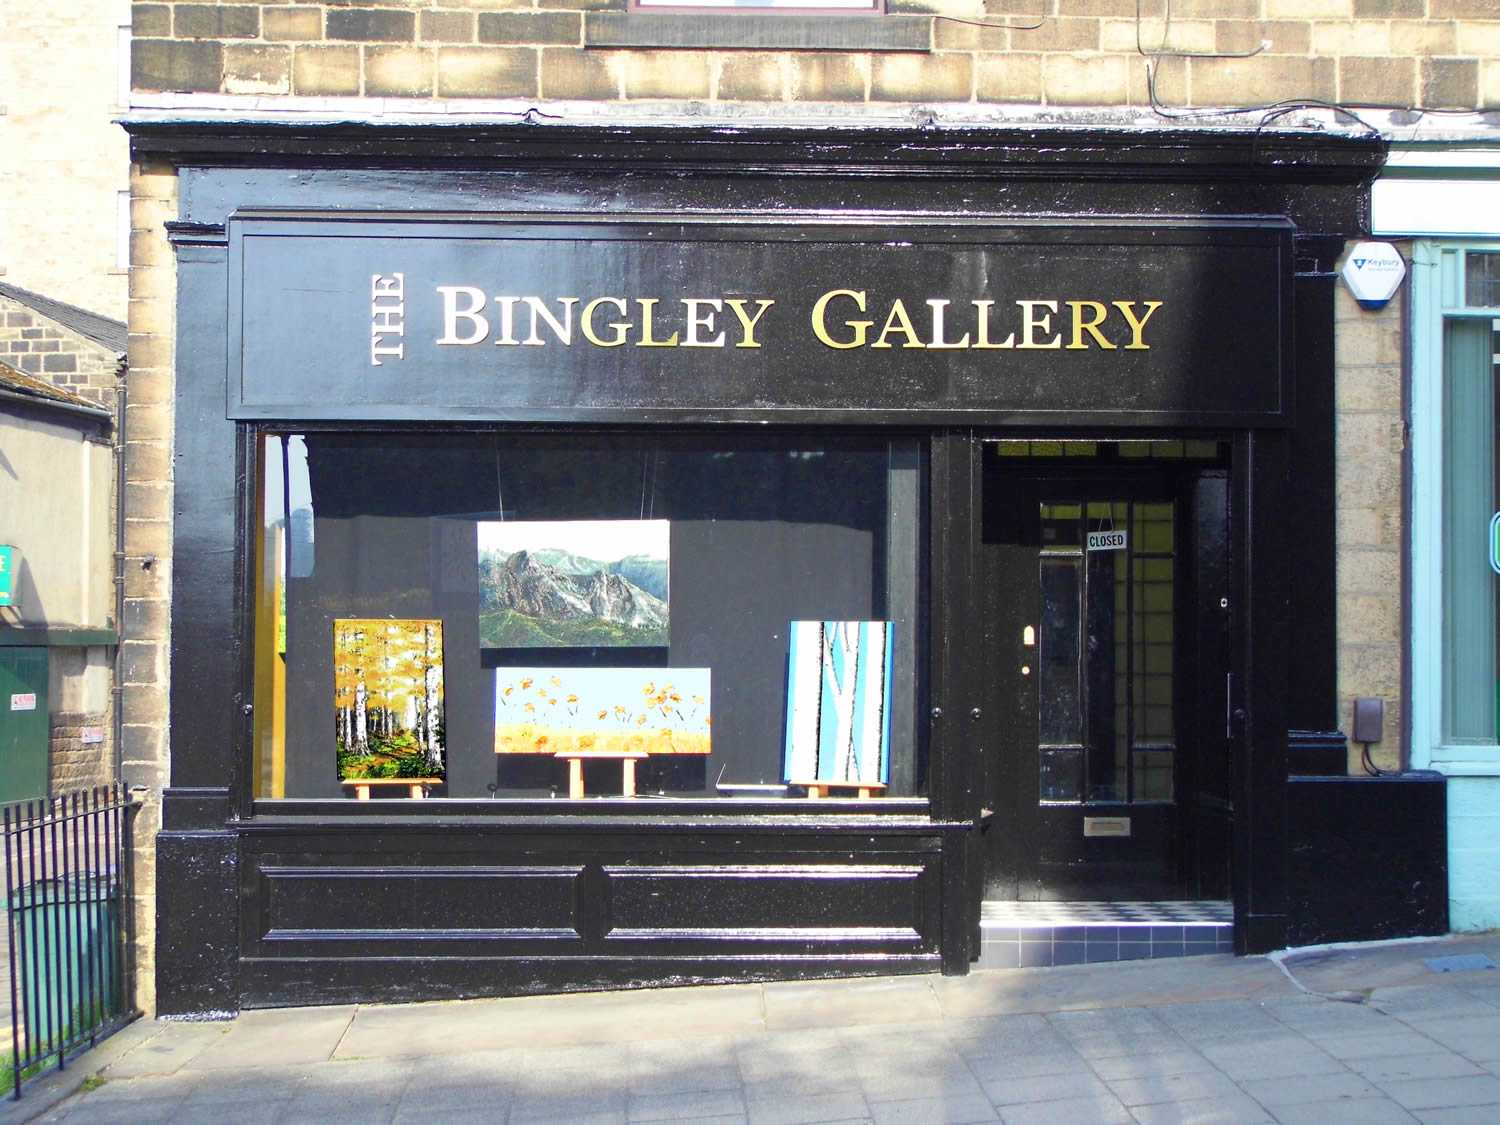 The Bingley Gallery